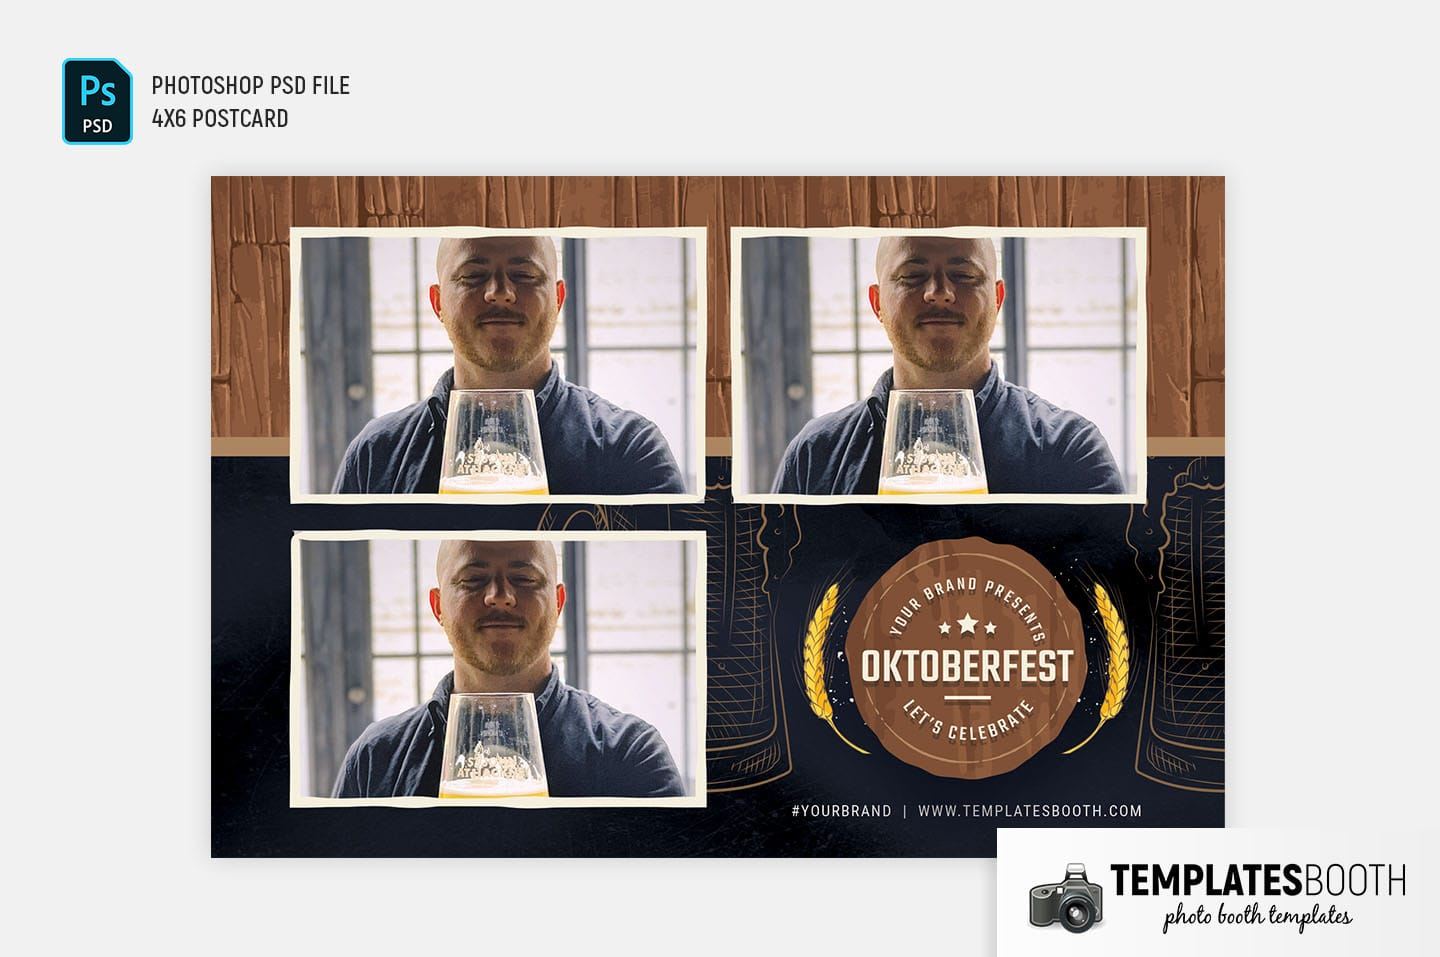 Oktoberfest Photo Booth Template (4x6 postcard landscape)